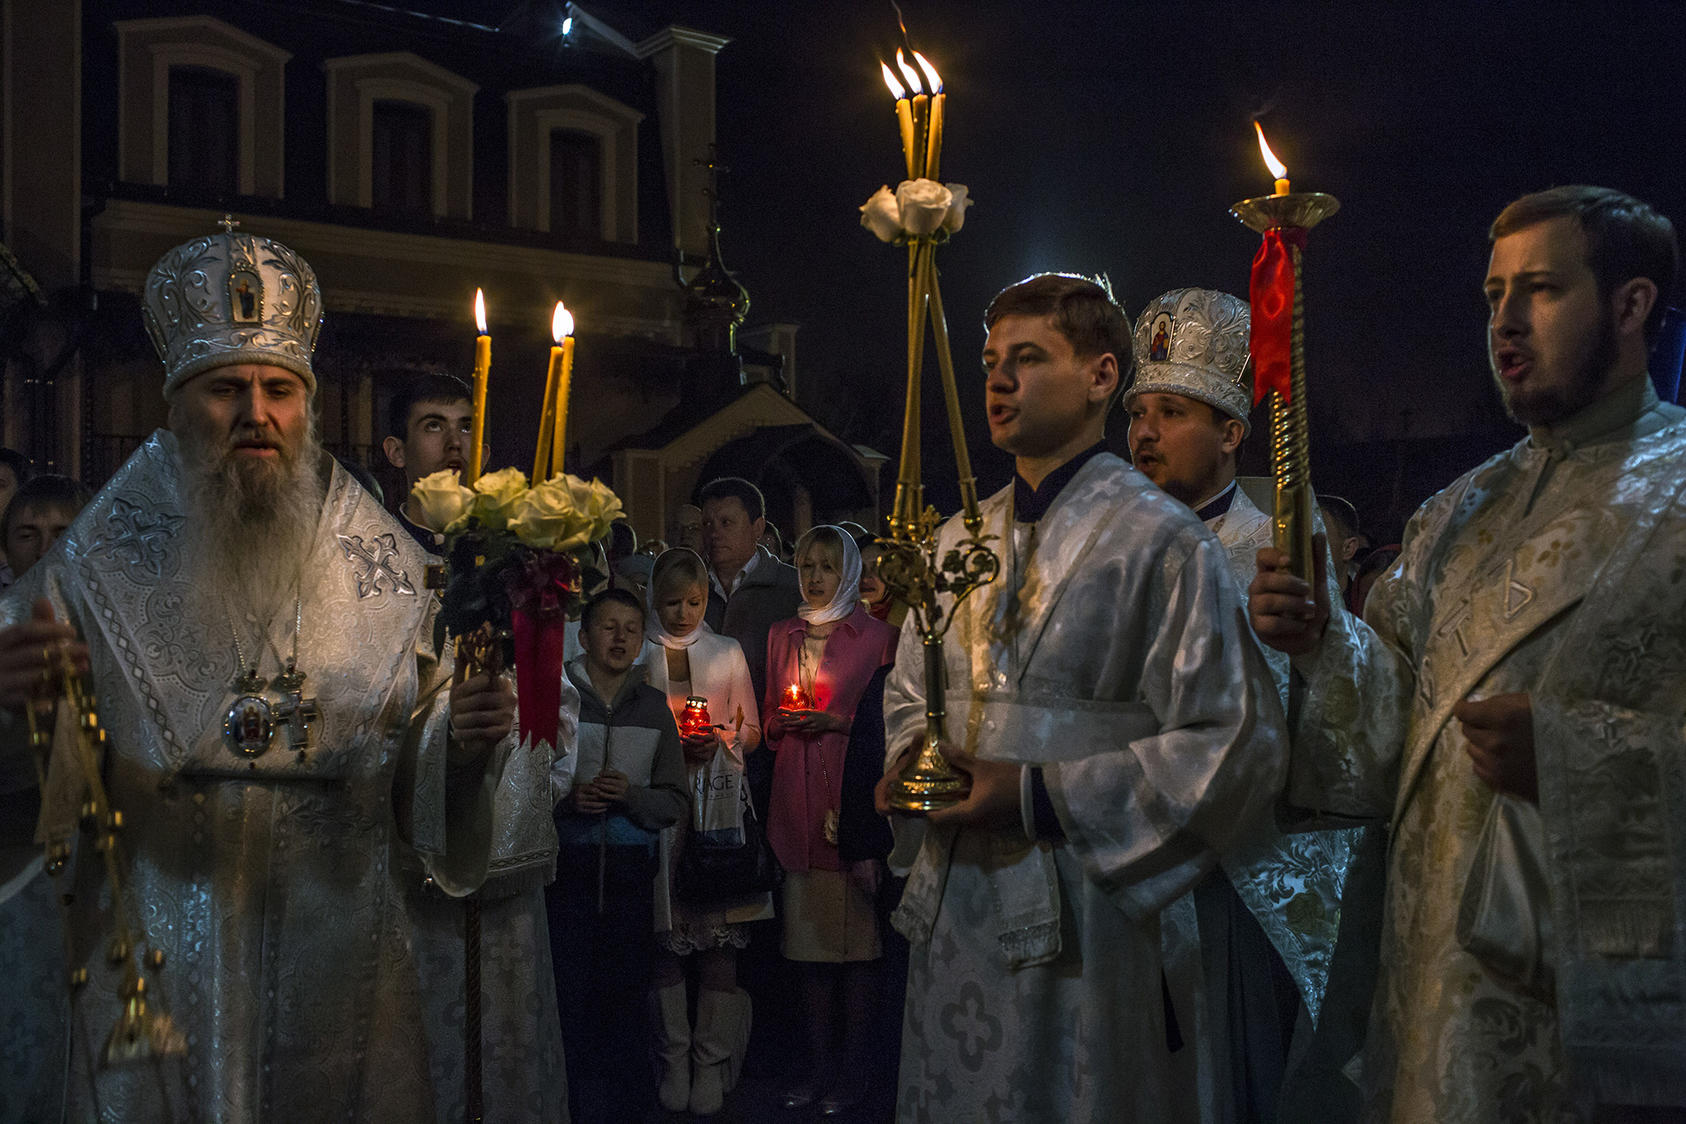 Orthodox worshippers during a midnight Easter ceremony outside the St. Nicholas Cathedral in Donetsk, Ukraine, April 20, 2014. (Mauricio Lima/The New York Times)